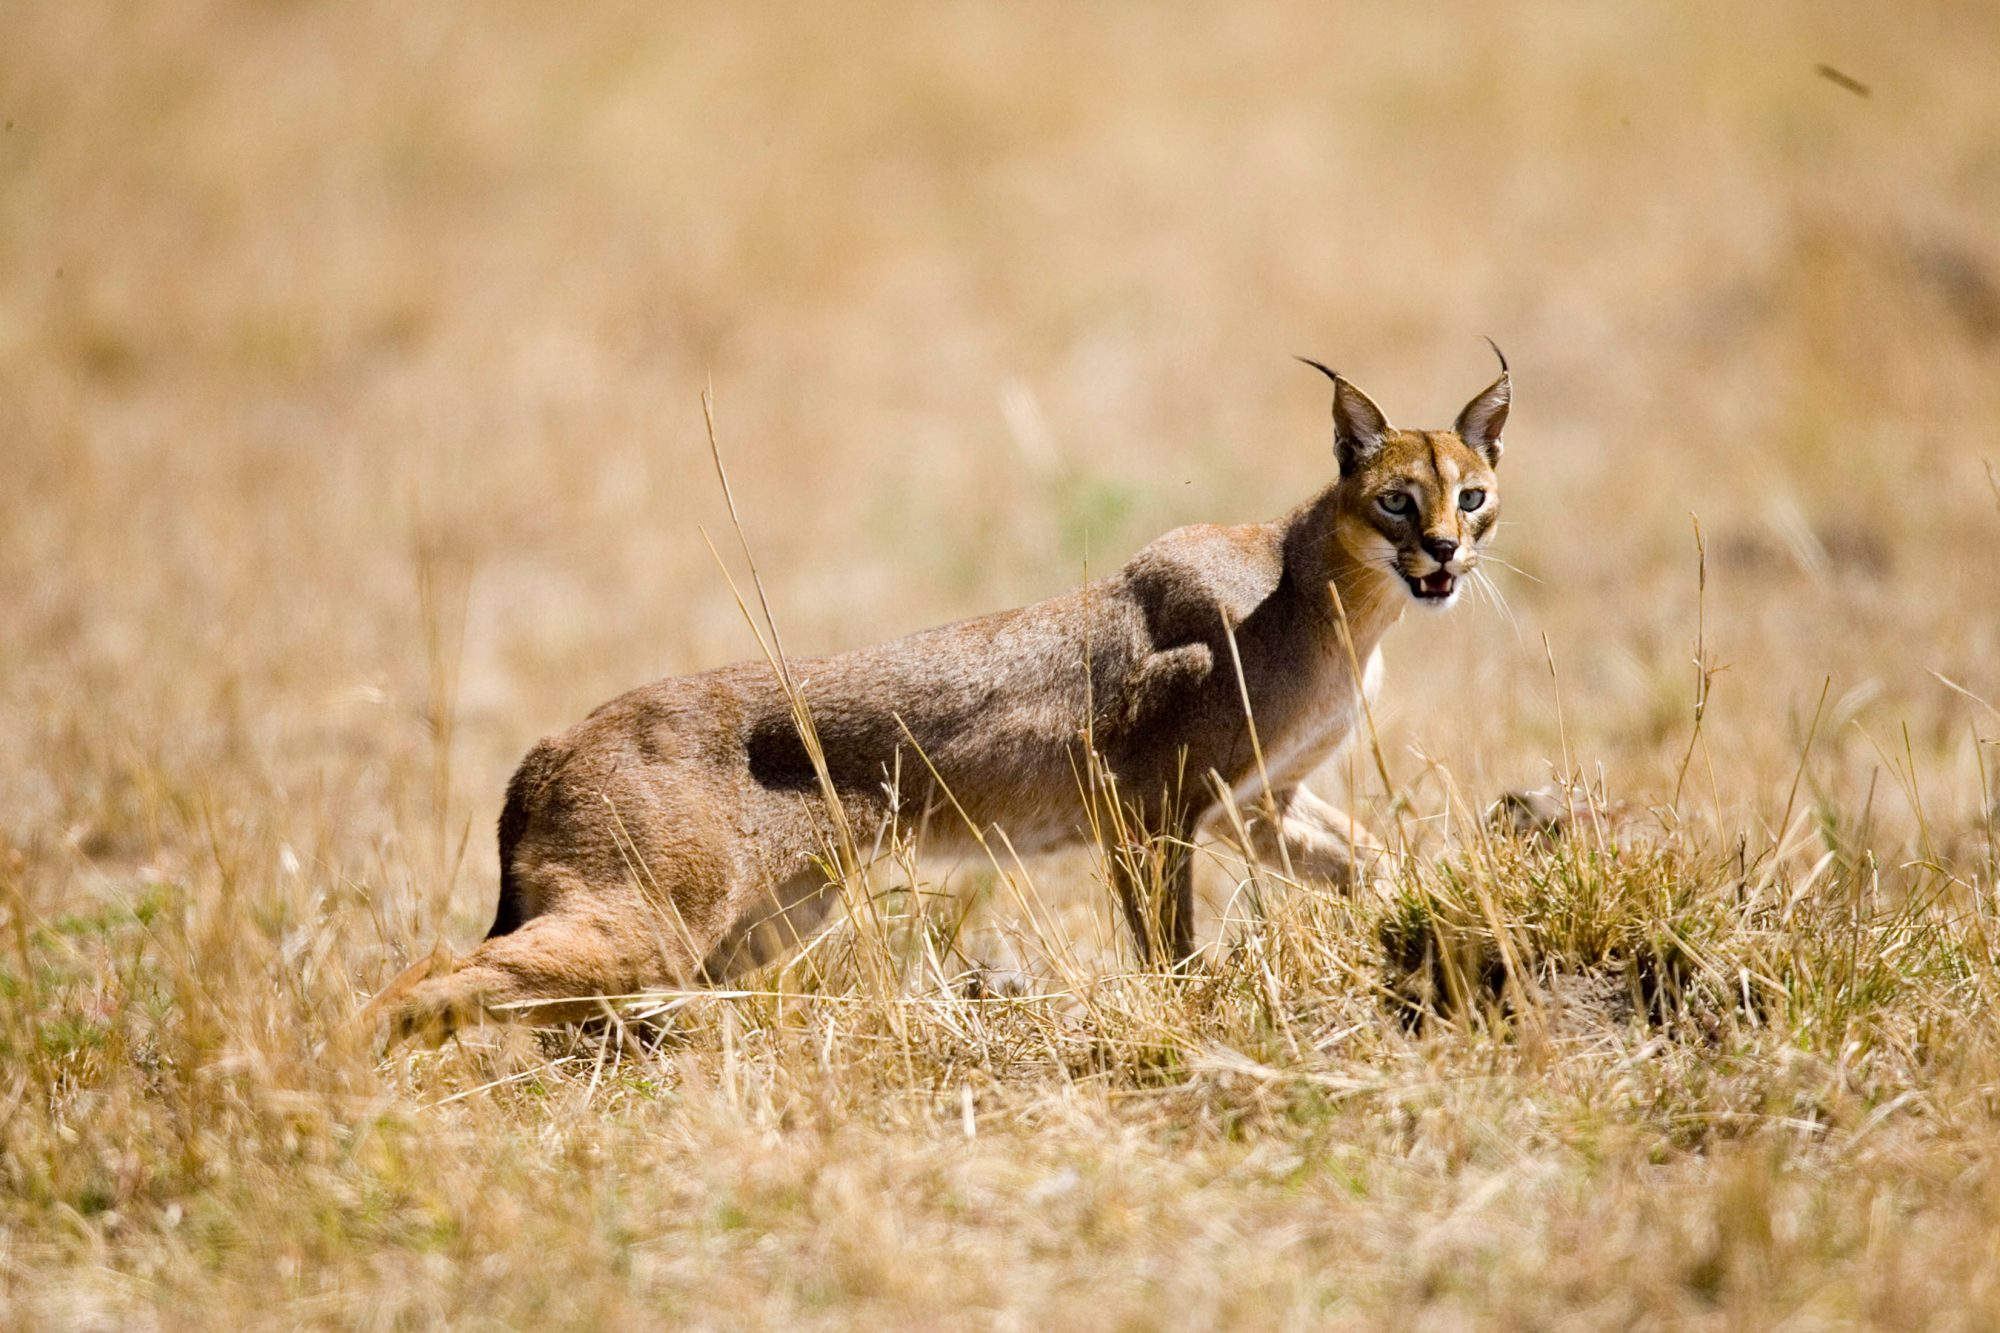 Caracal striding in the wild.